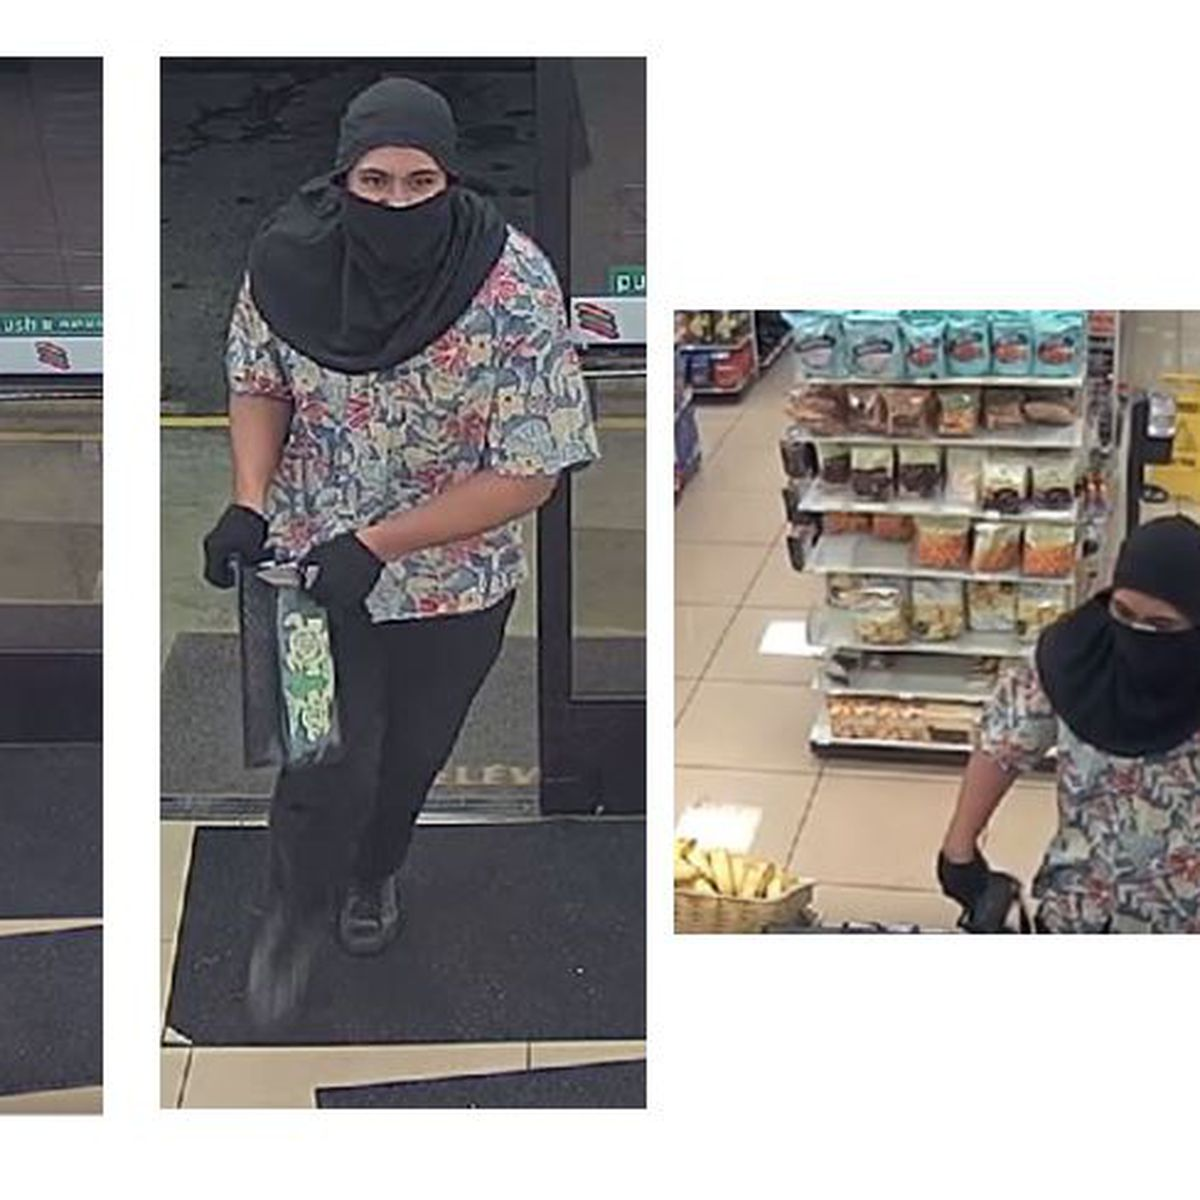 Police arrest 19-year-old in connection with convenience store robberies